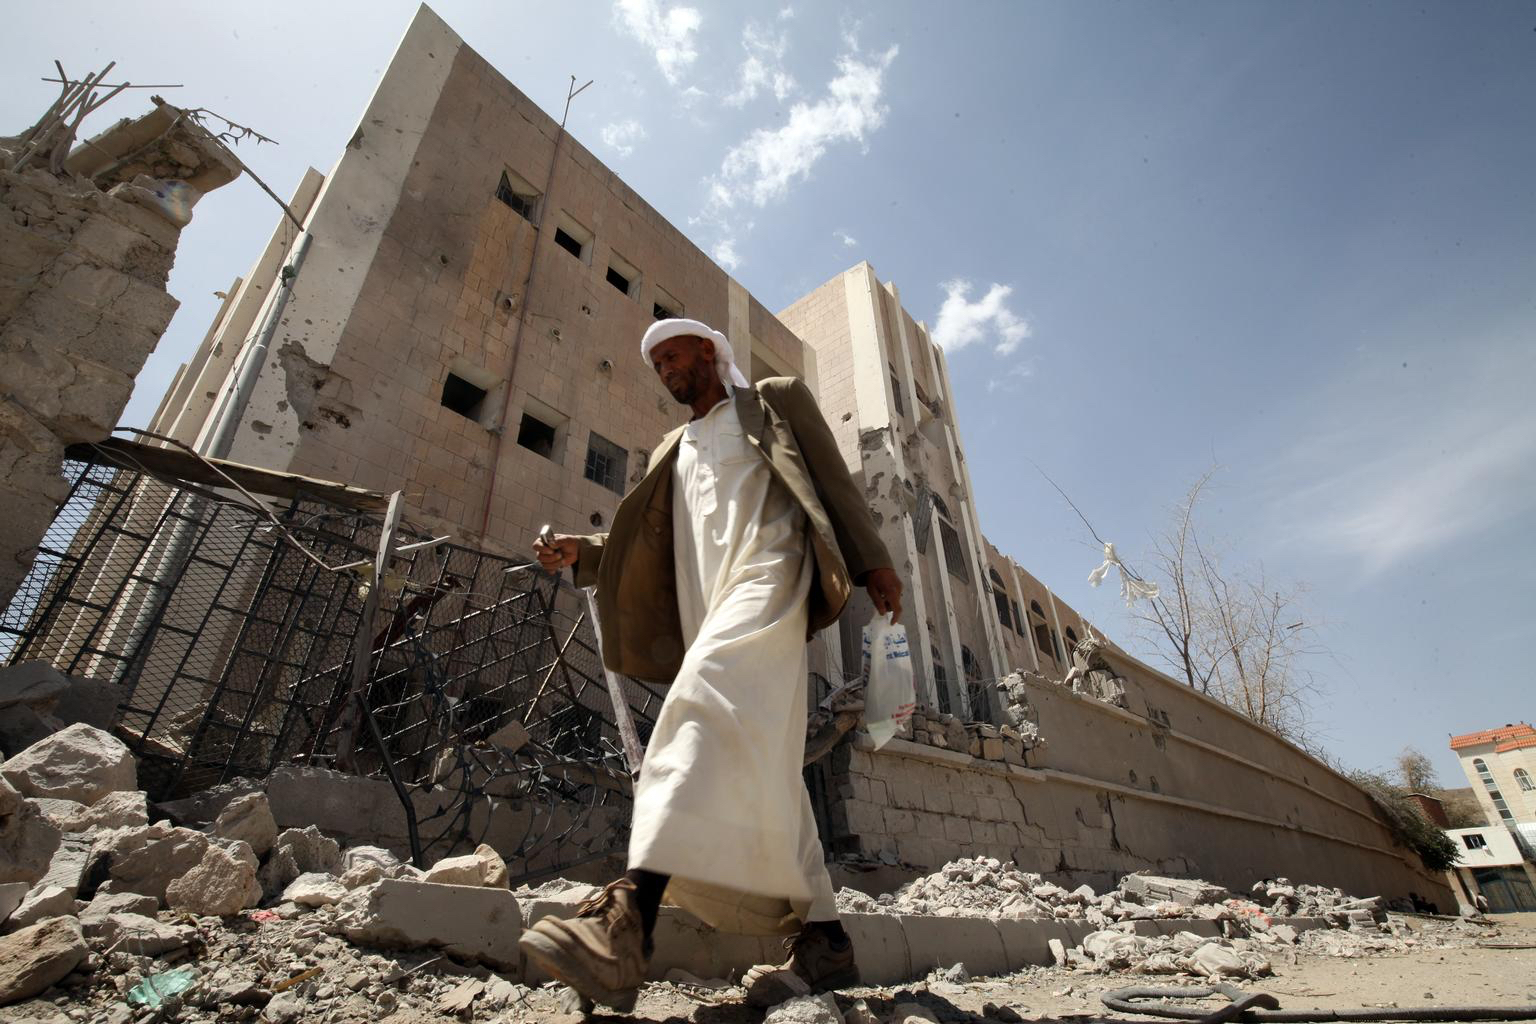 April 28, 2015. A guard walks past what remains of Ibn Sina School, in Sana'a, the capital. The school was heavily damaged during an air strike that hit the building next to the school. The impact of the blast crumbled the outer wall of the schoolyard a